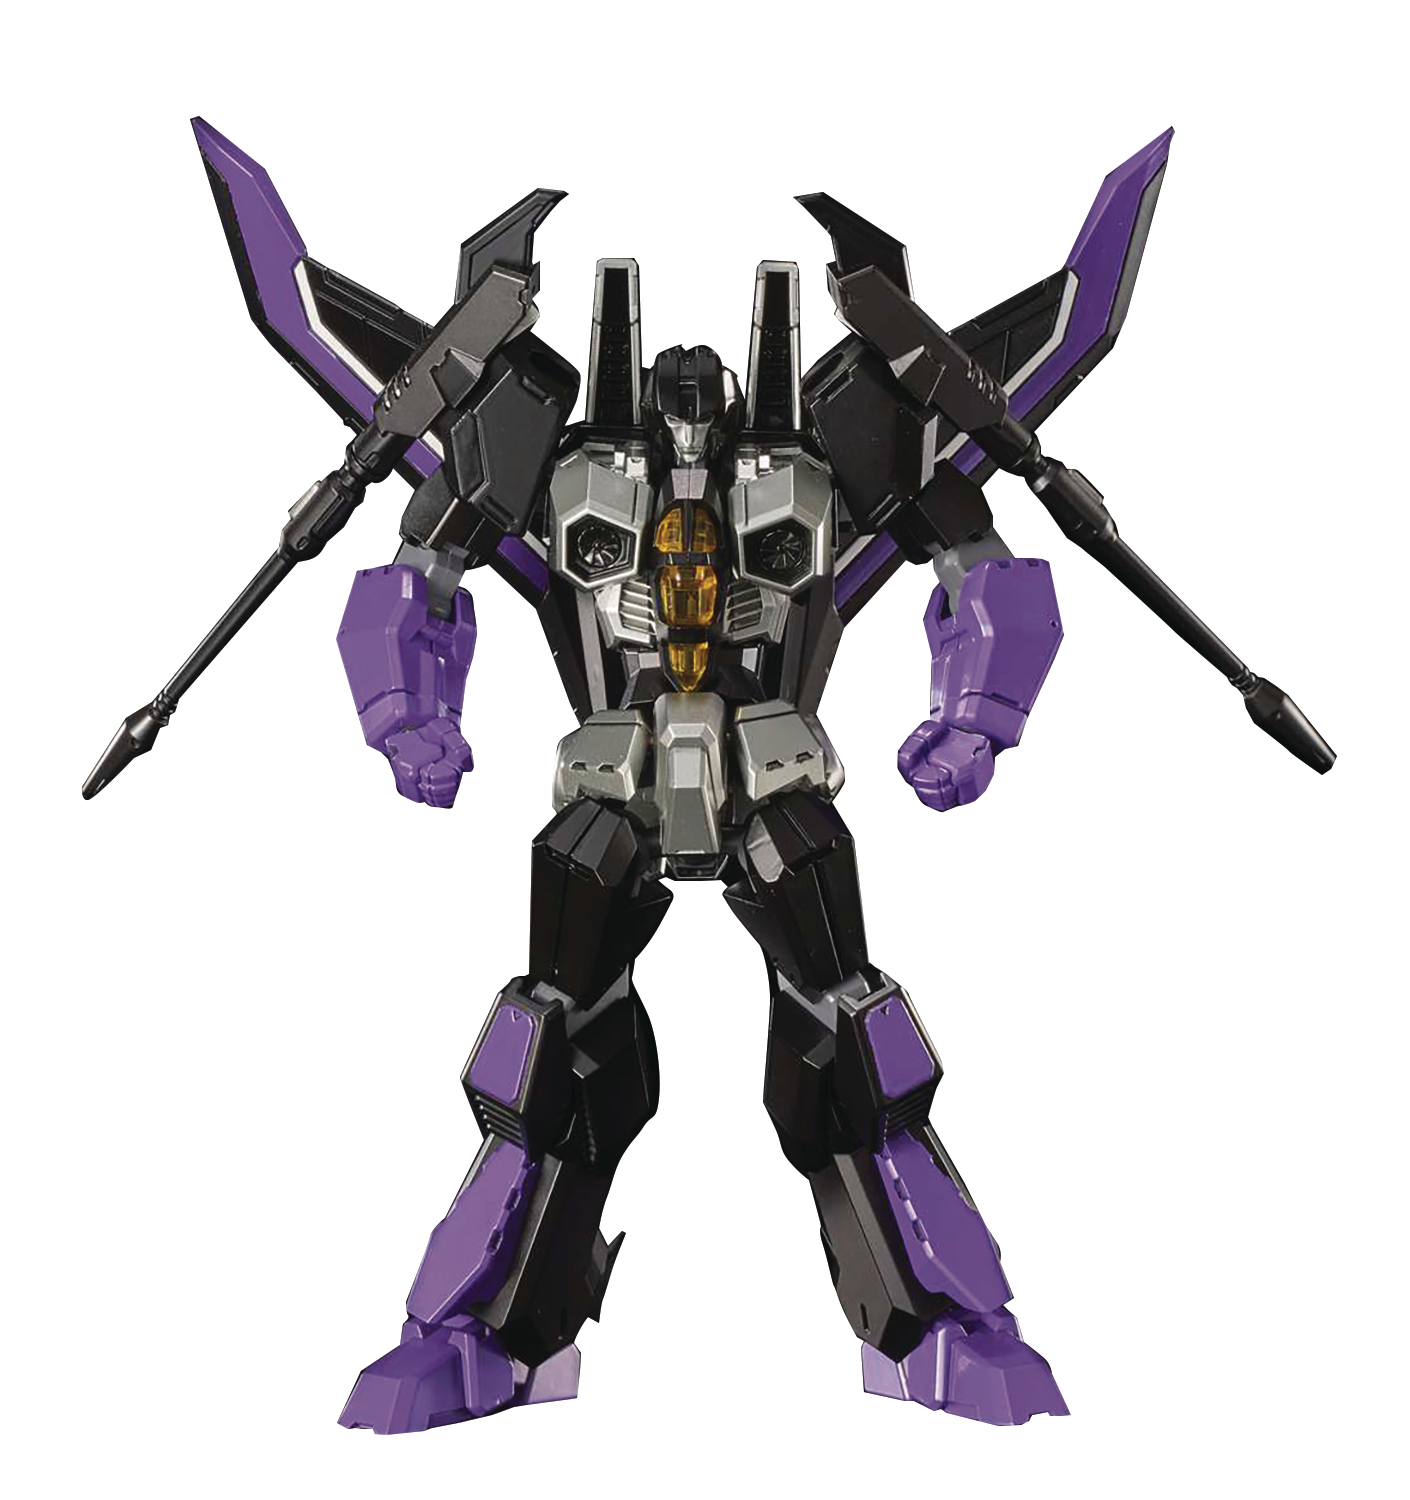 TRANSFORMERS SKYWARP FURAI MDL KIT